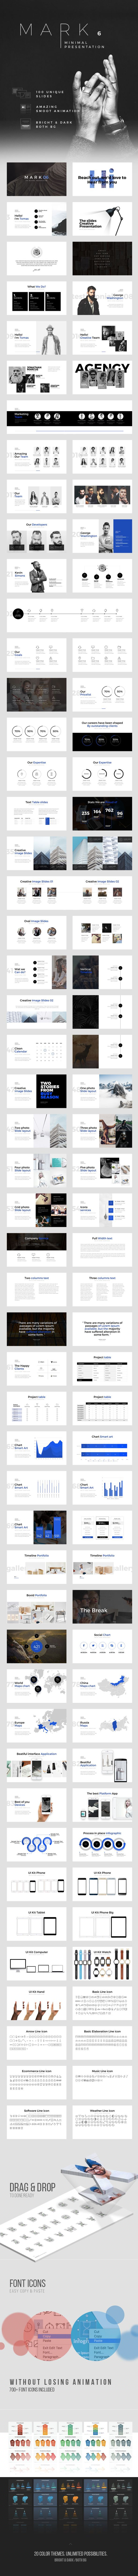 MARK06-Minimal Powerpoint Template